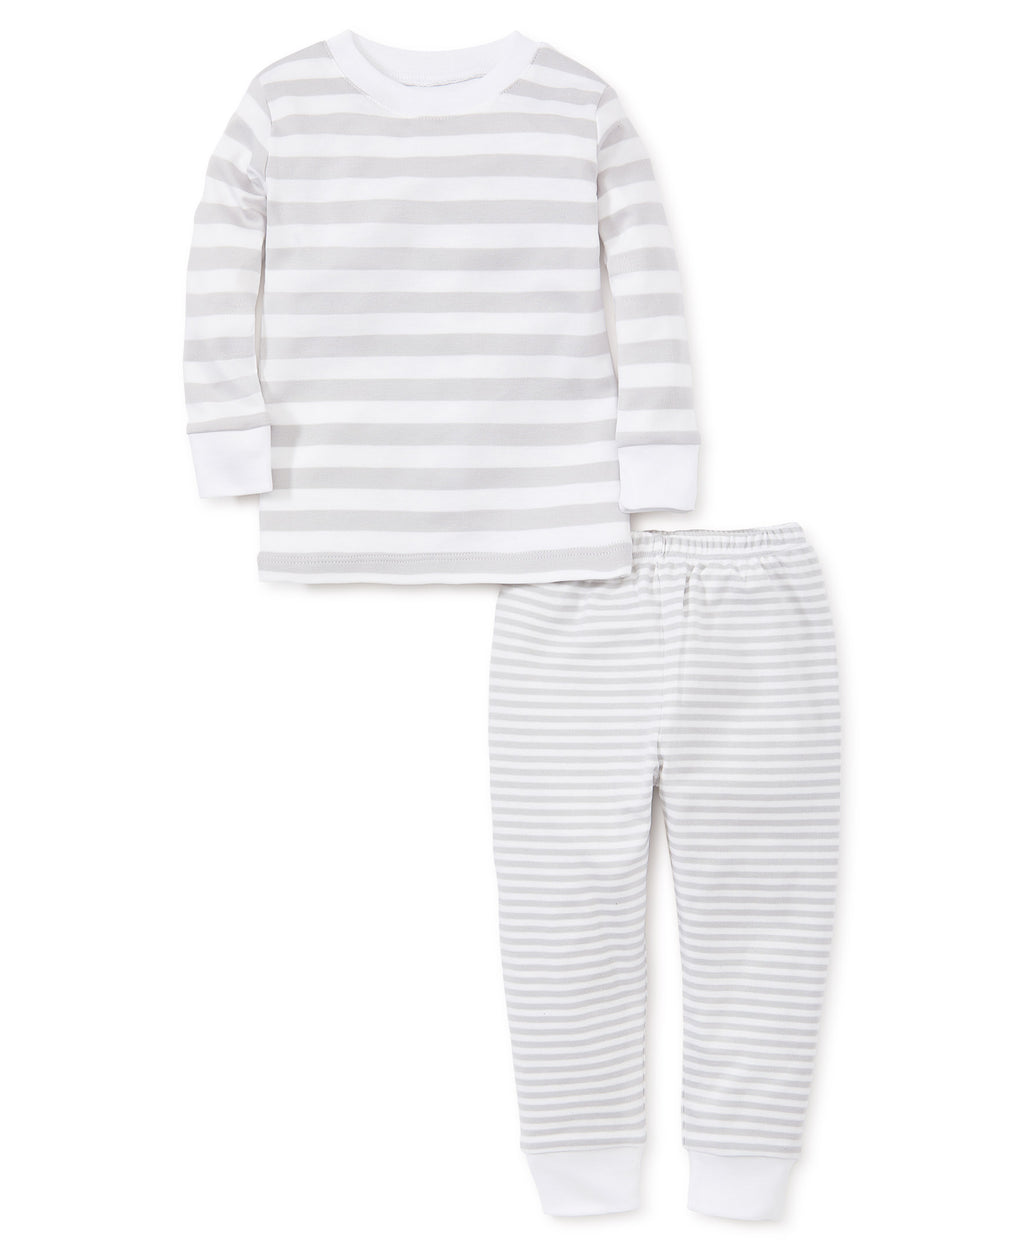 Gray Stripes Toddler Pajama Set